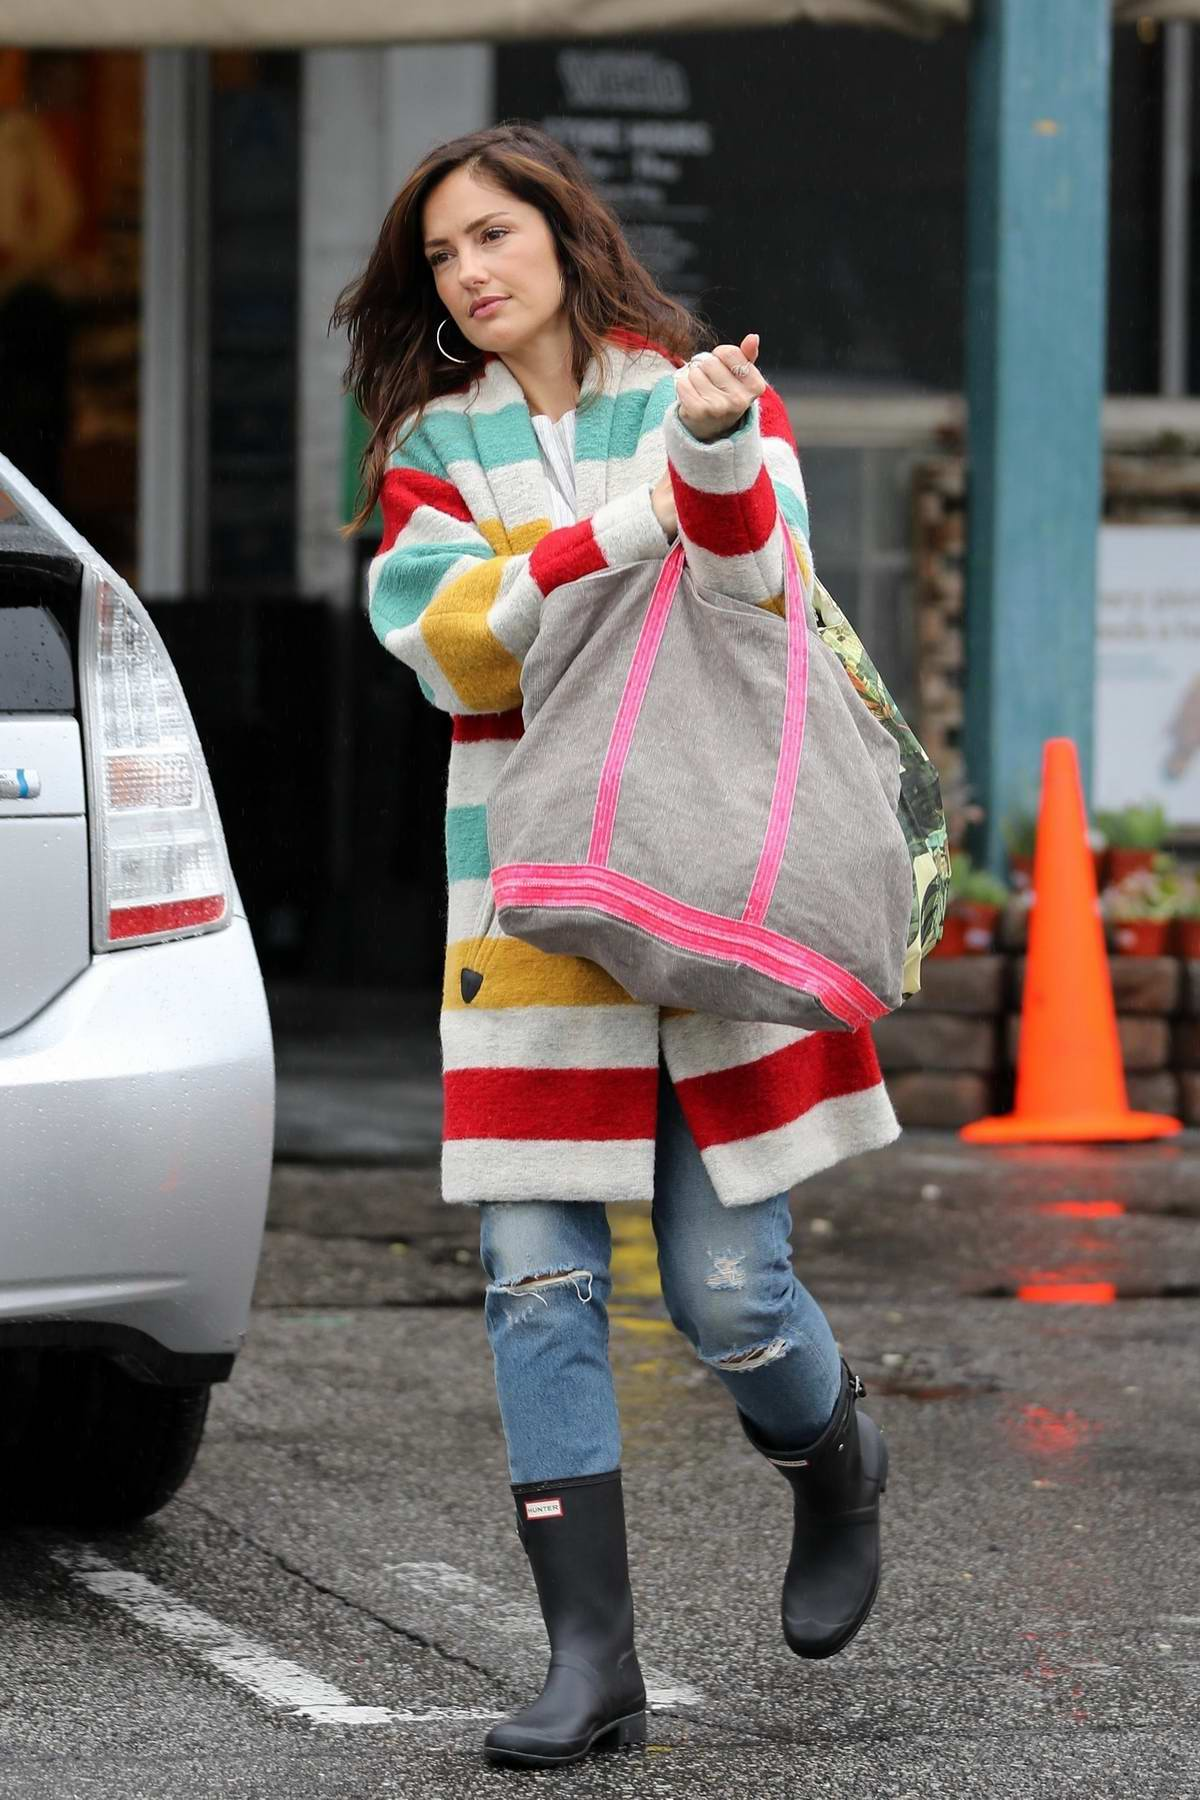 Minka Kelly looks lovely in a colorful jacket while shopping groceries at Whole Foods in West Hollywood, Los Angeles